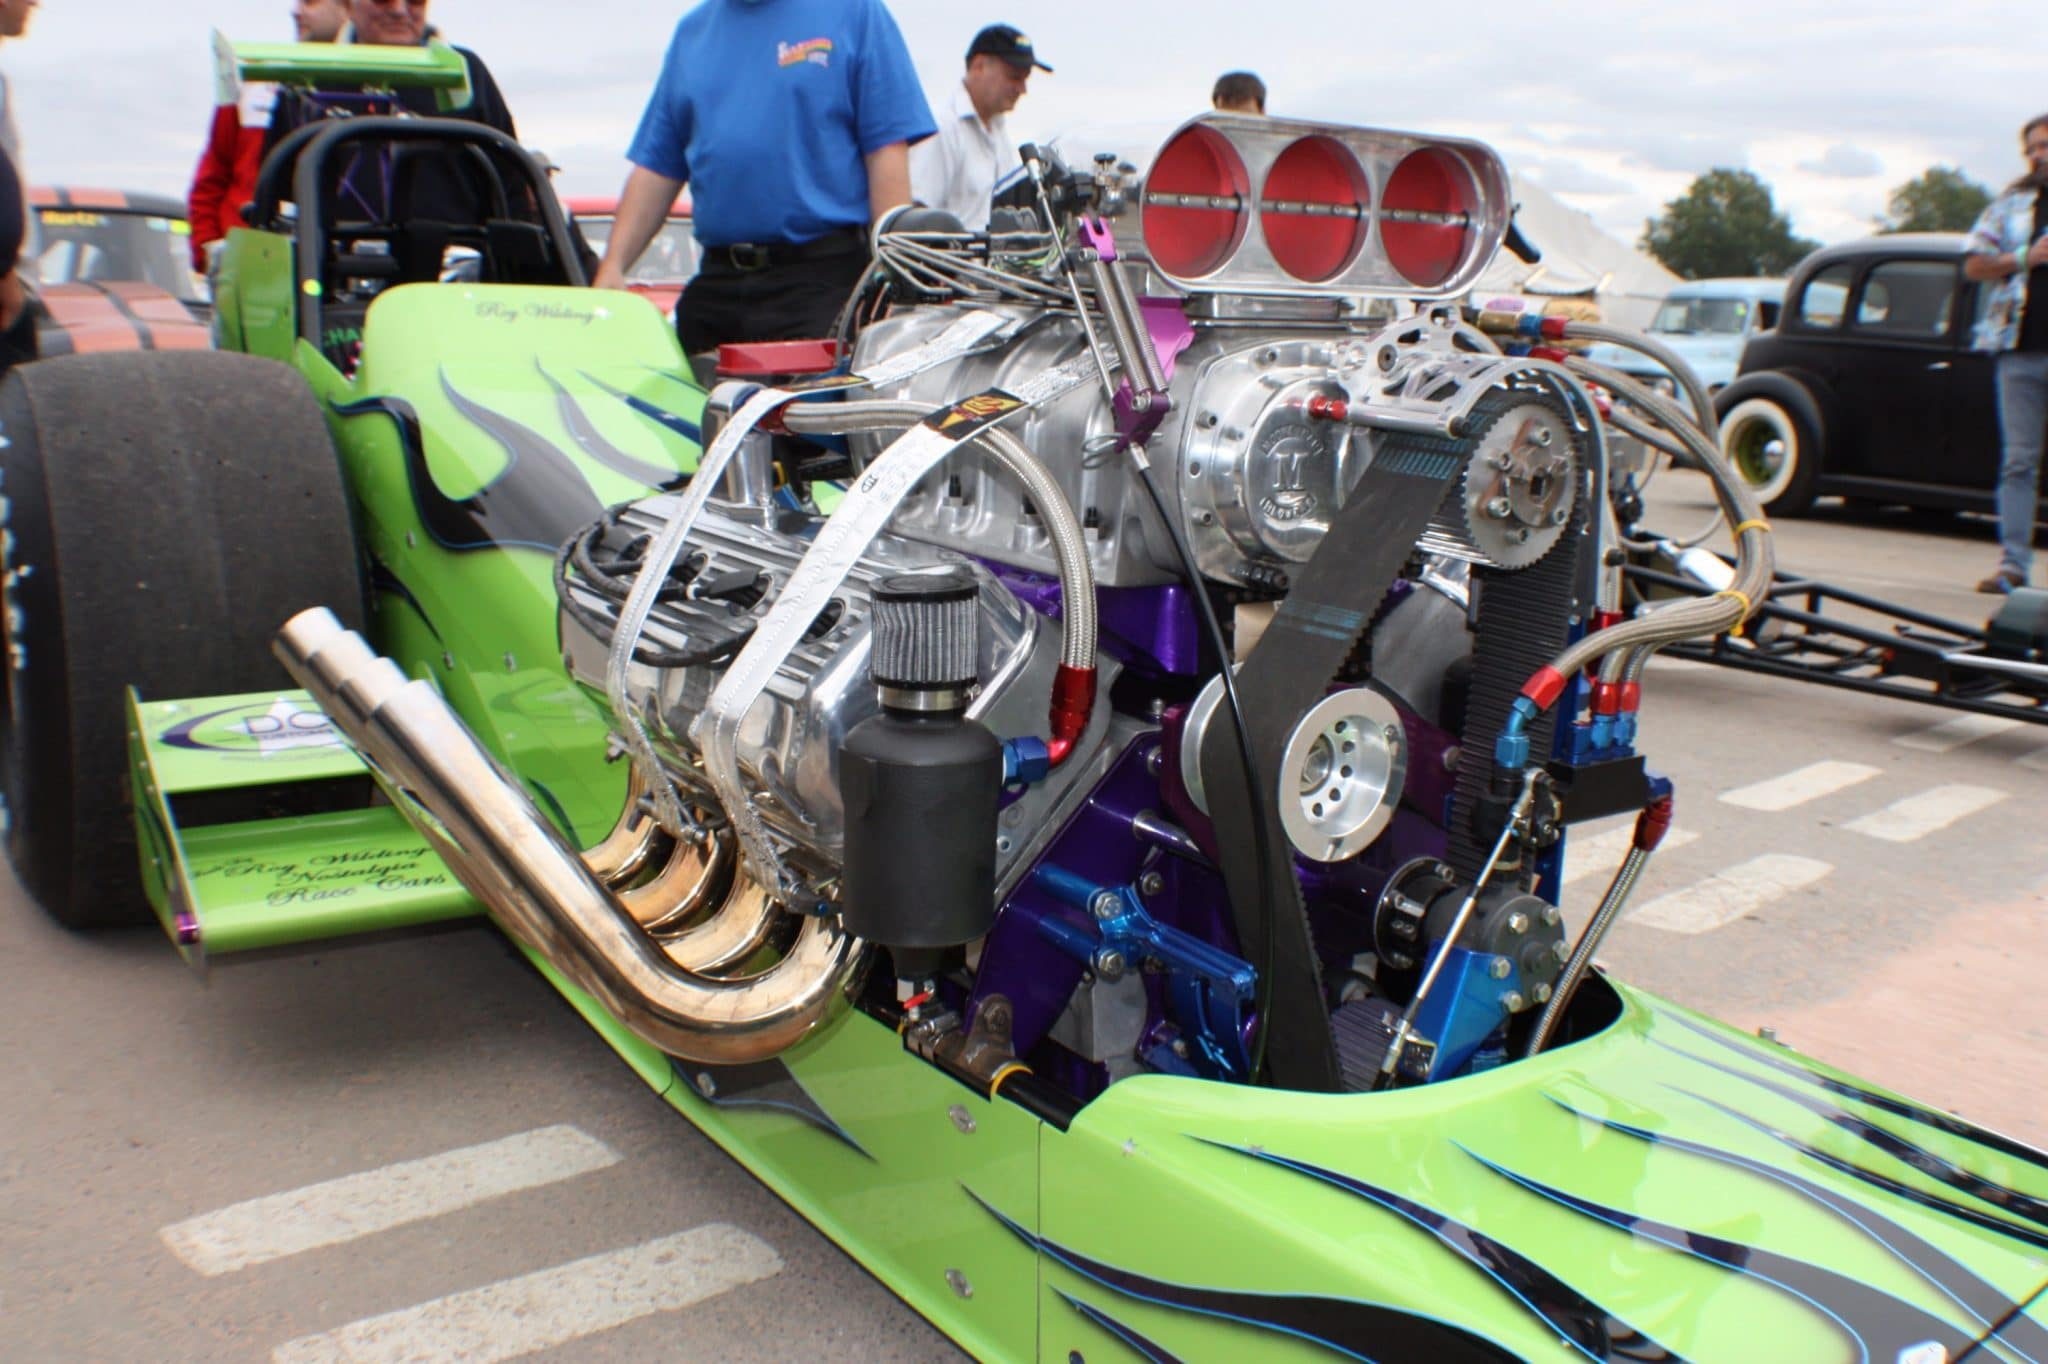 dragster engine close up